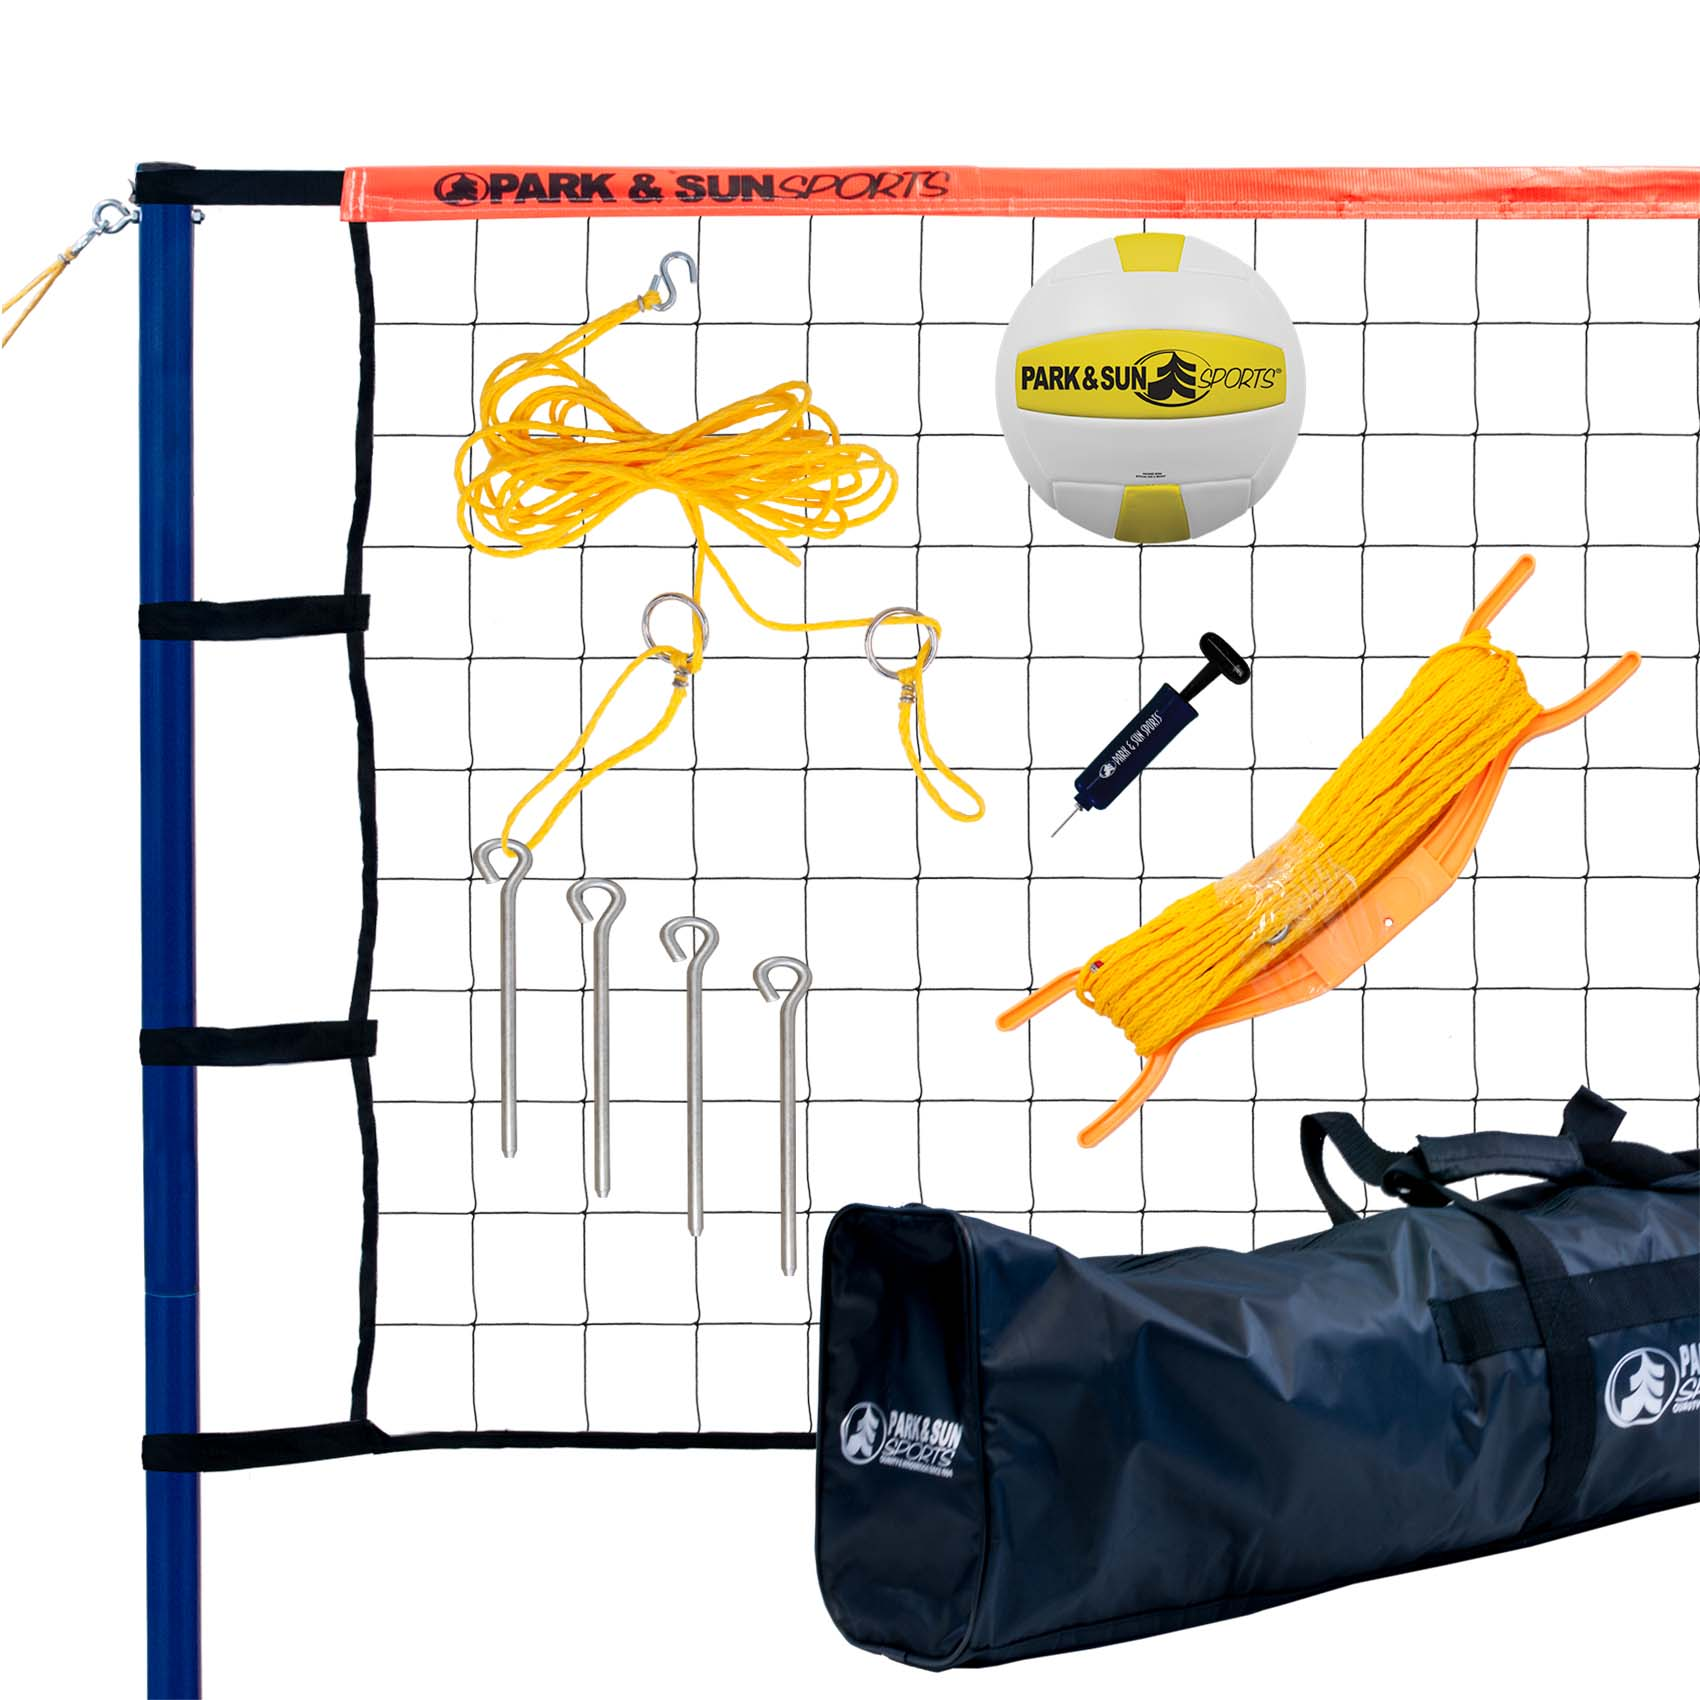 Park & Sun Spiker Sport Steel Orange Portable Outdoor Volleyball Net Set w/ Bag